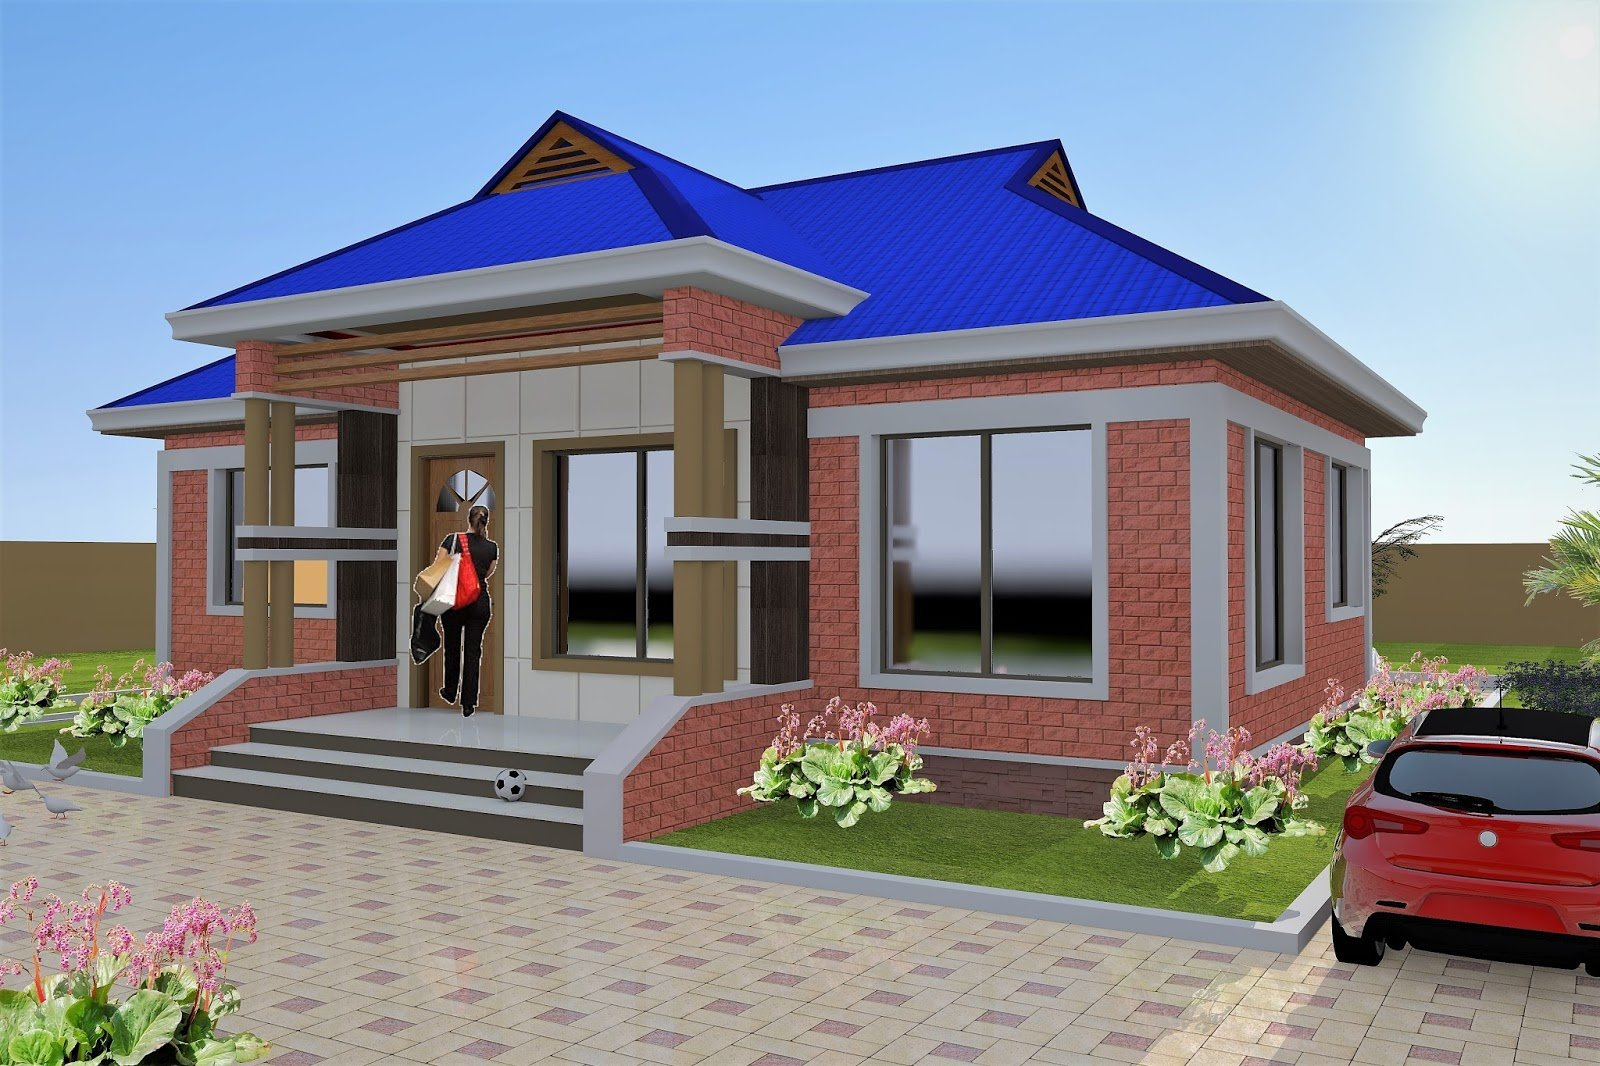 Best 3 Bedroom House Plan Hydroform Bricks Id Ma 052 With Pictures